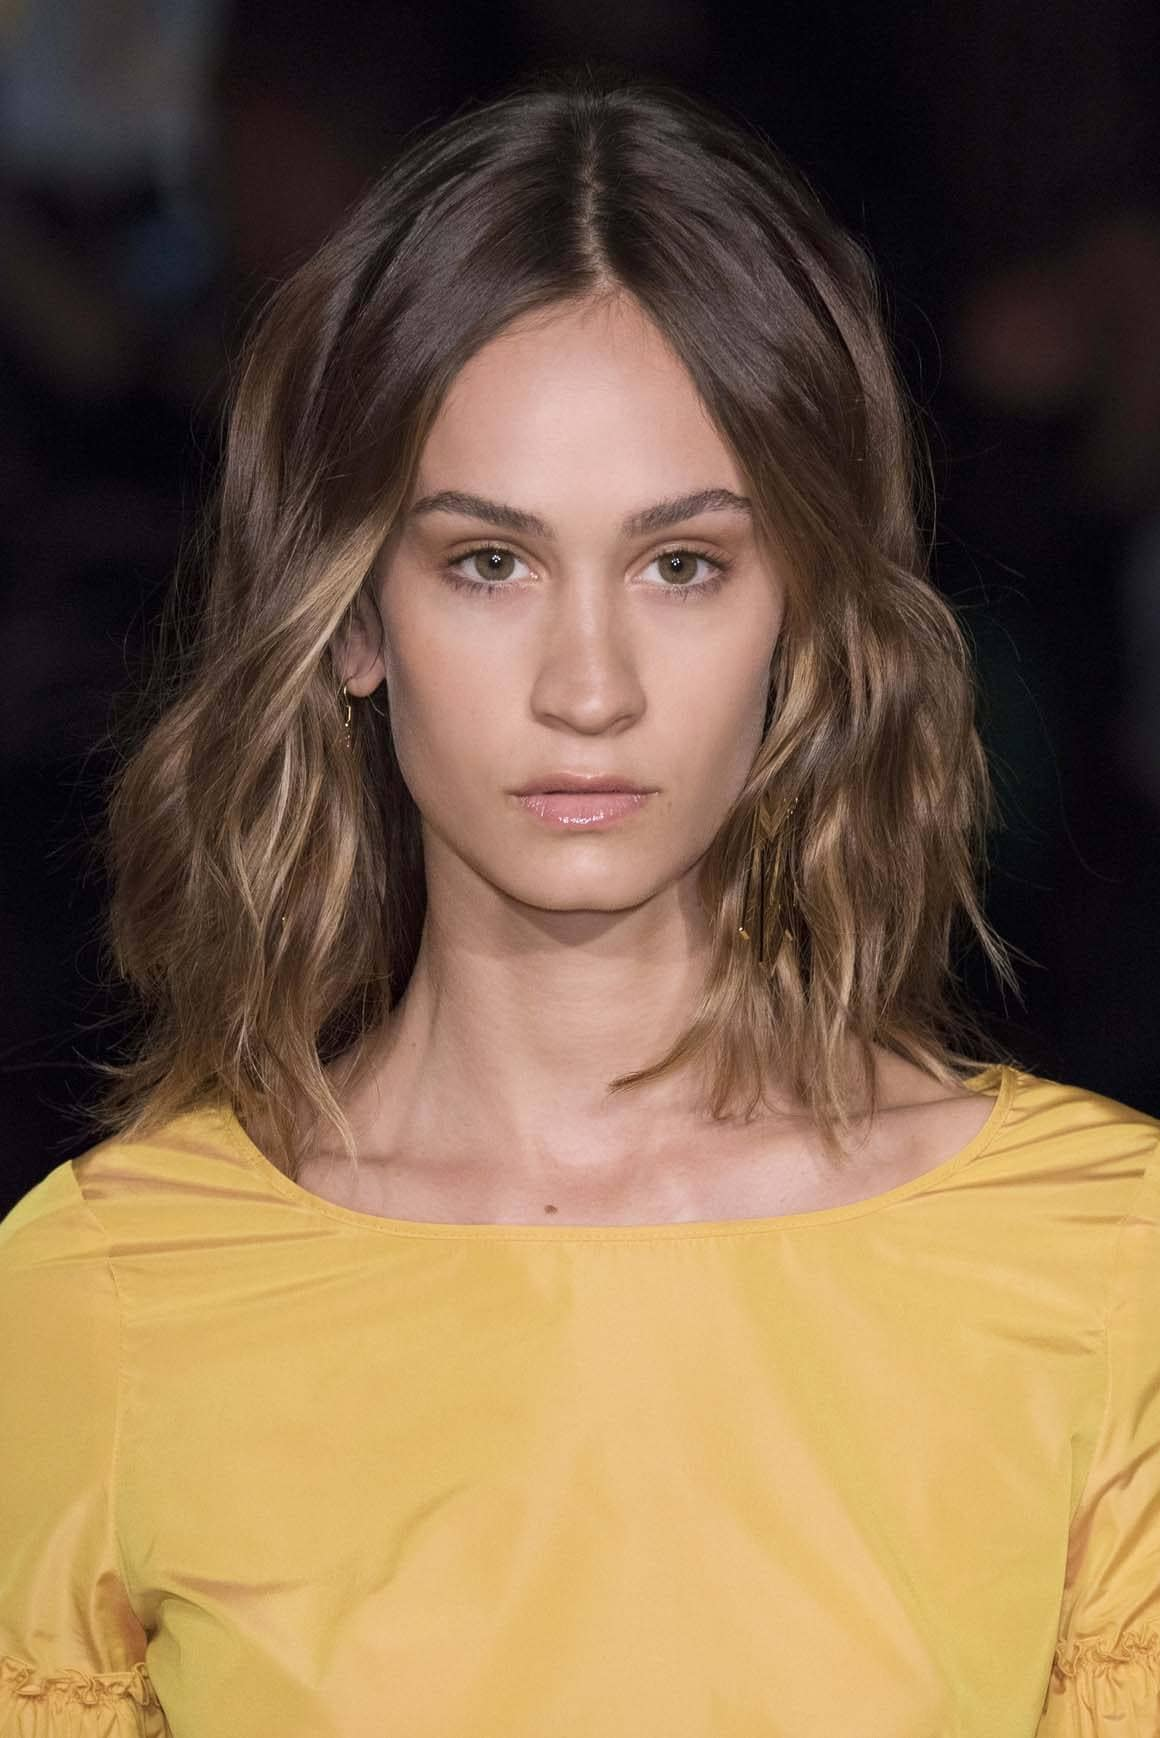 Medium hairstyles for thick hair: Brunette model with wavy mid-length hair with fluffed-out ends